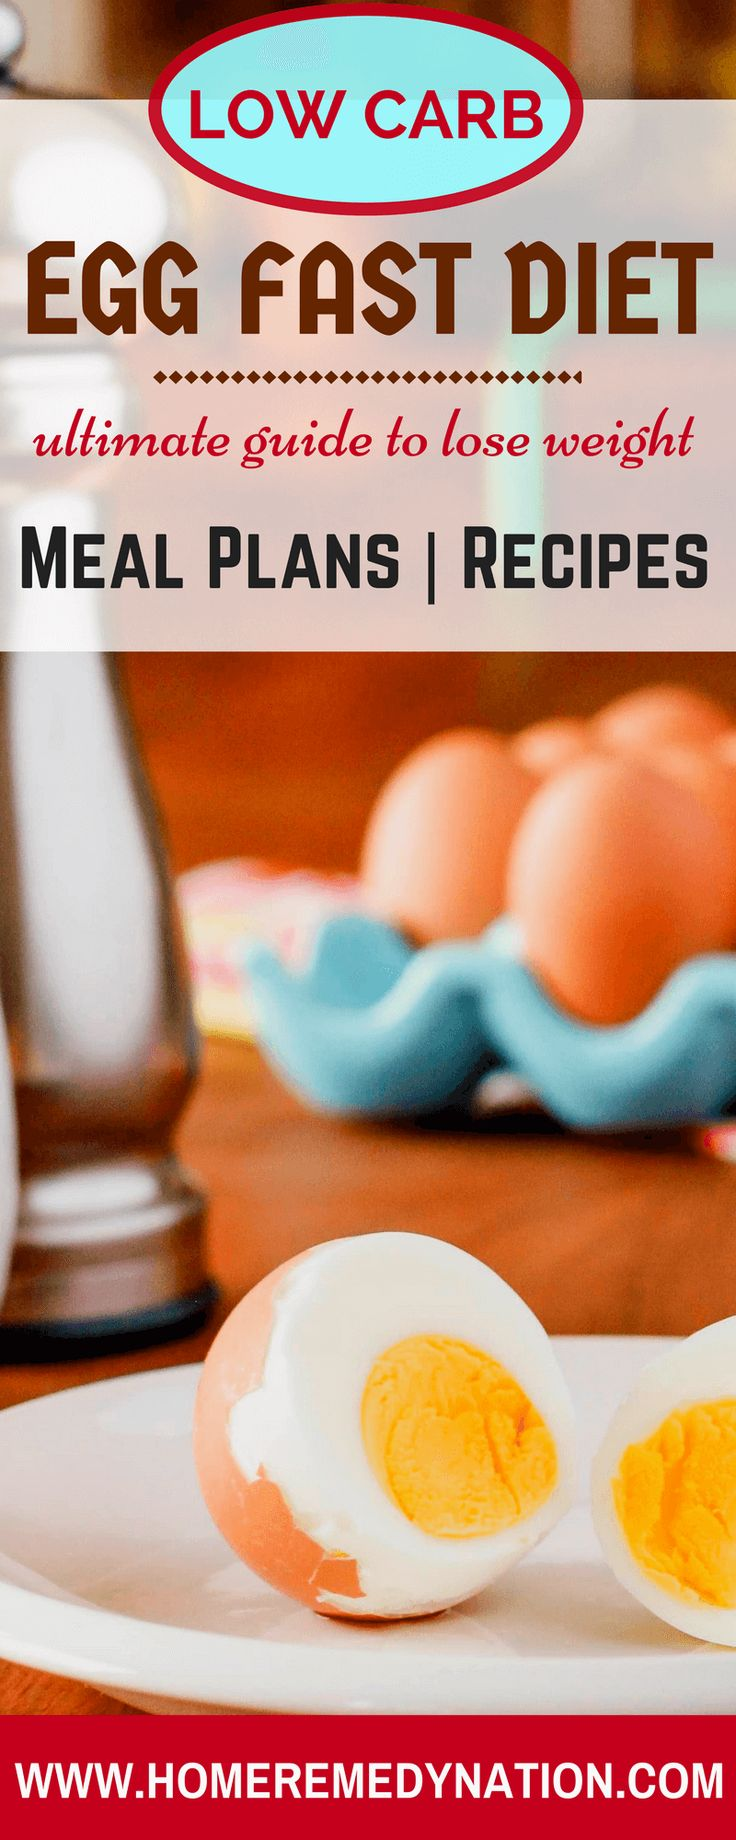 Egg Fast Diet Plan Recipes for Weight Loss | Home Remedy Nation